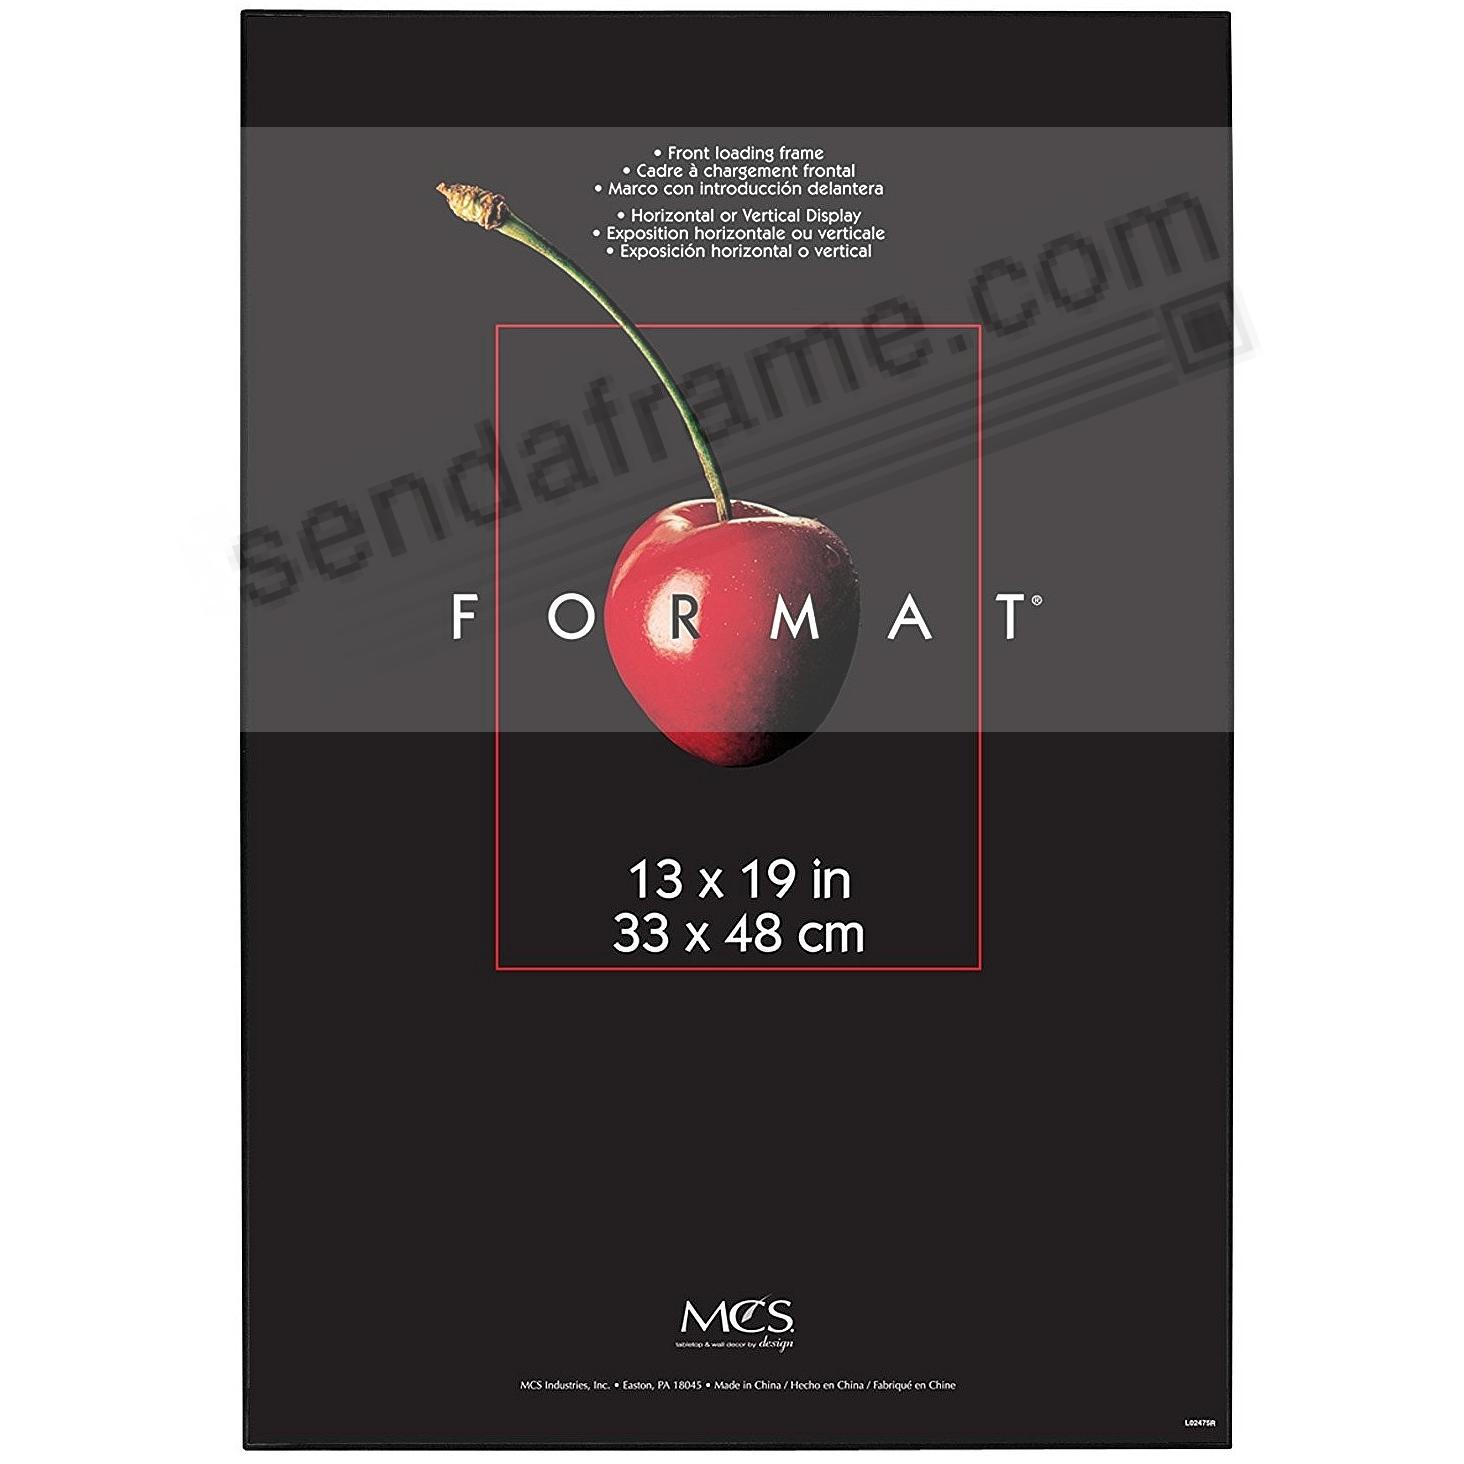 The ORIGINAL FORMAT FRONT-LOAD Black 13x19 frame by MCS®